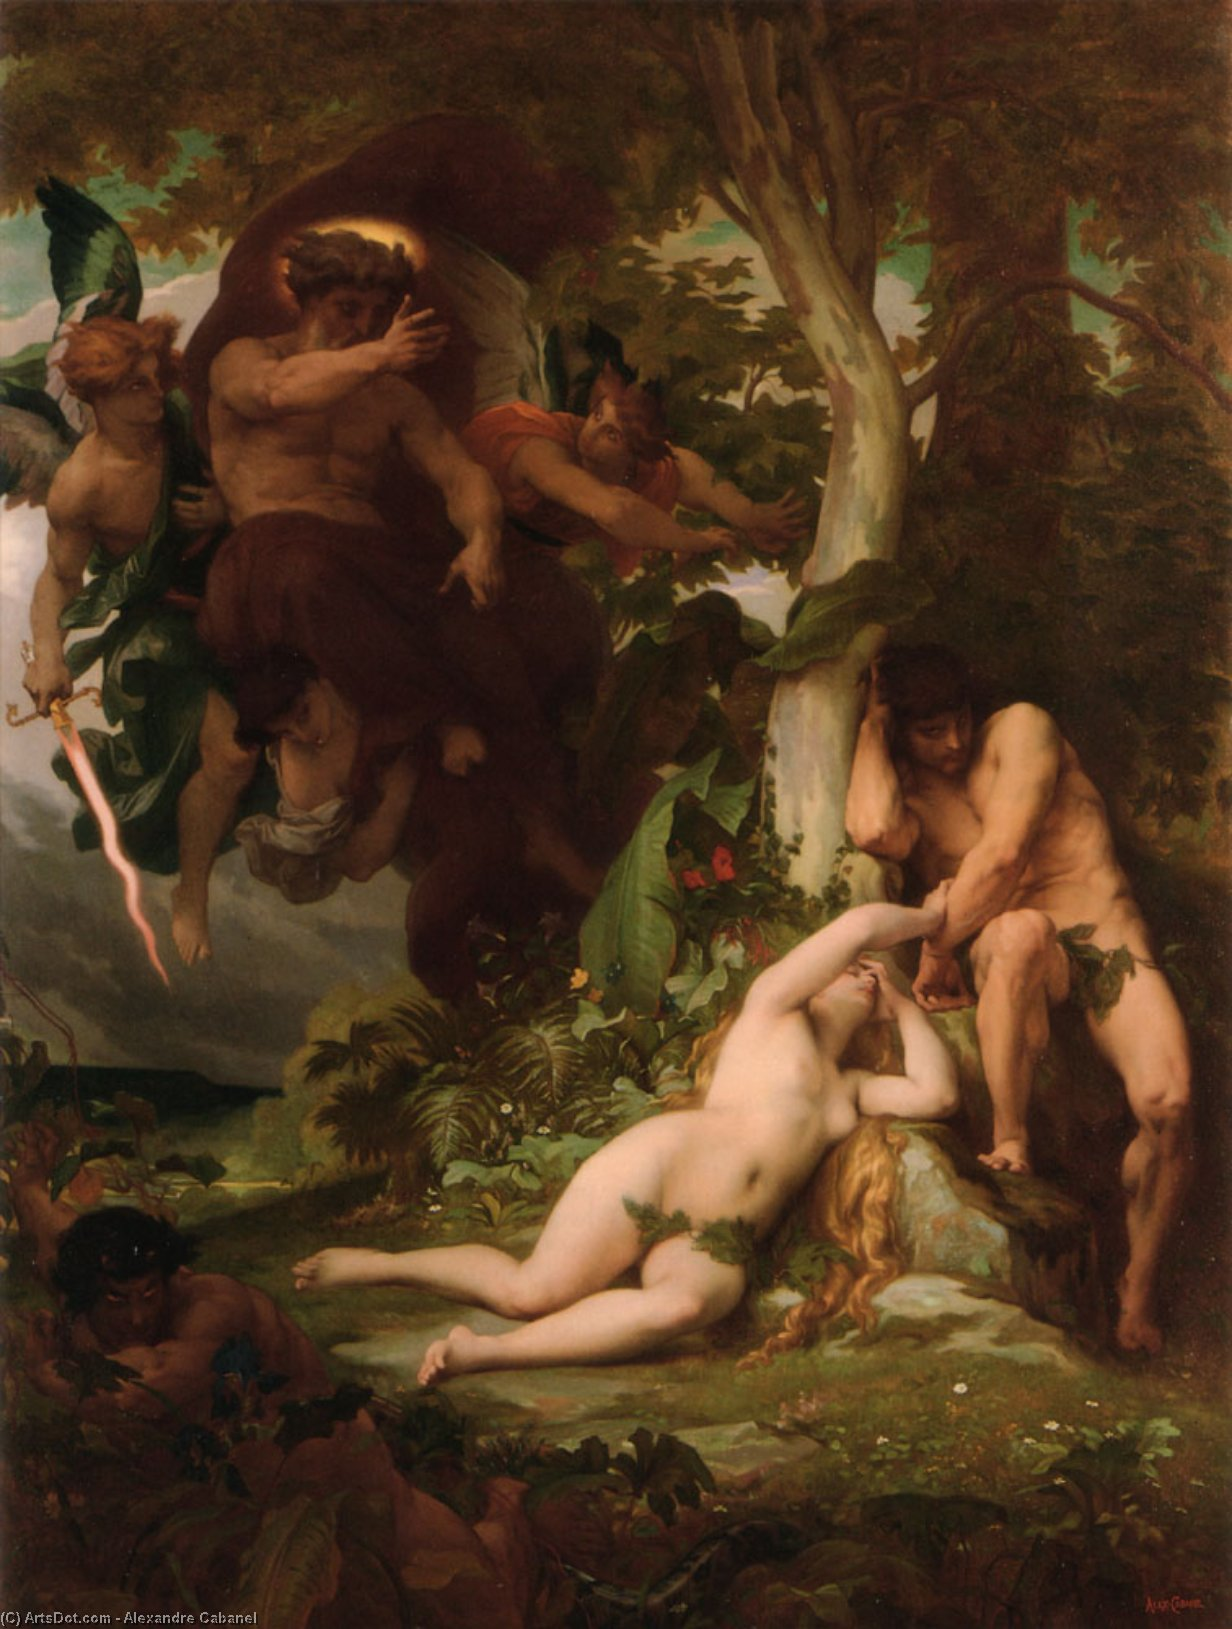 an essay on the fall of man and the intimate relationship of adam and eve with god